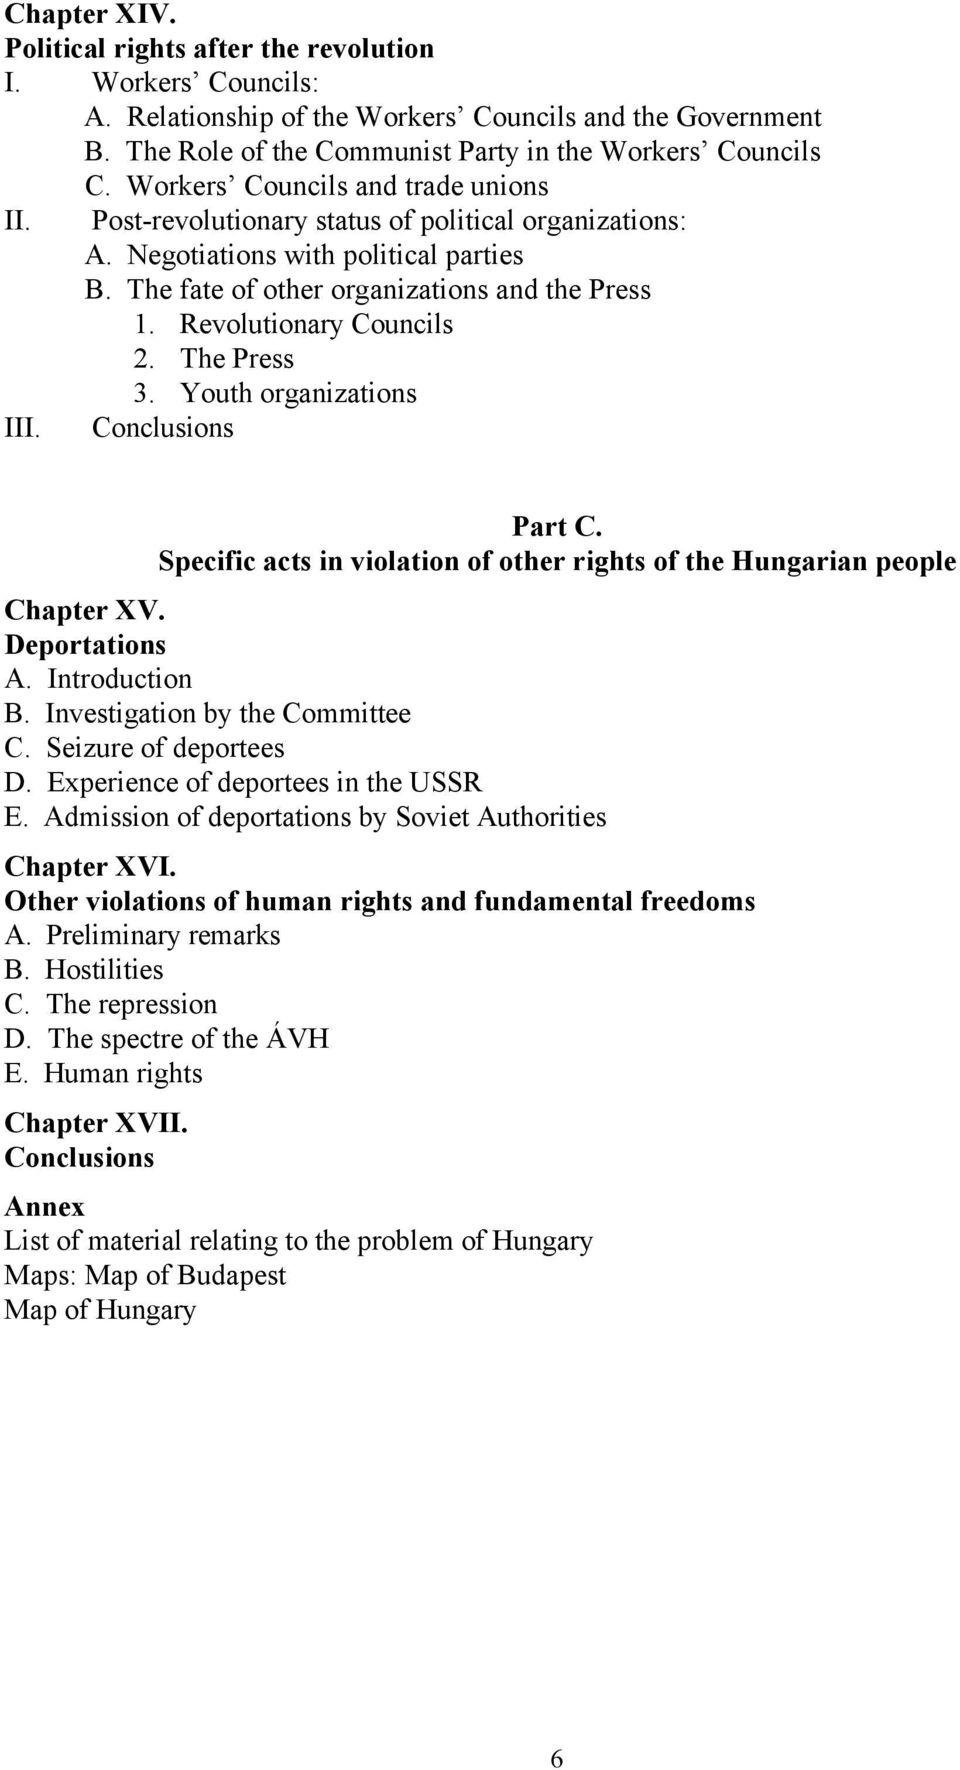 Revolutionary Councils 2. The Press 3. Youth organizations III. Conclusions Part C. Specific acts in violation of other rights of the Hungarian people Chapter XV. Deportations A. Introduction B.